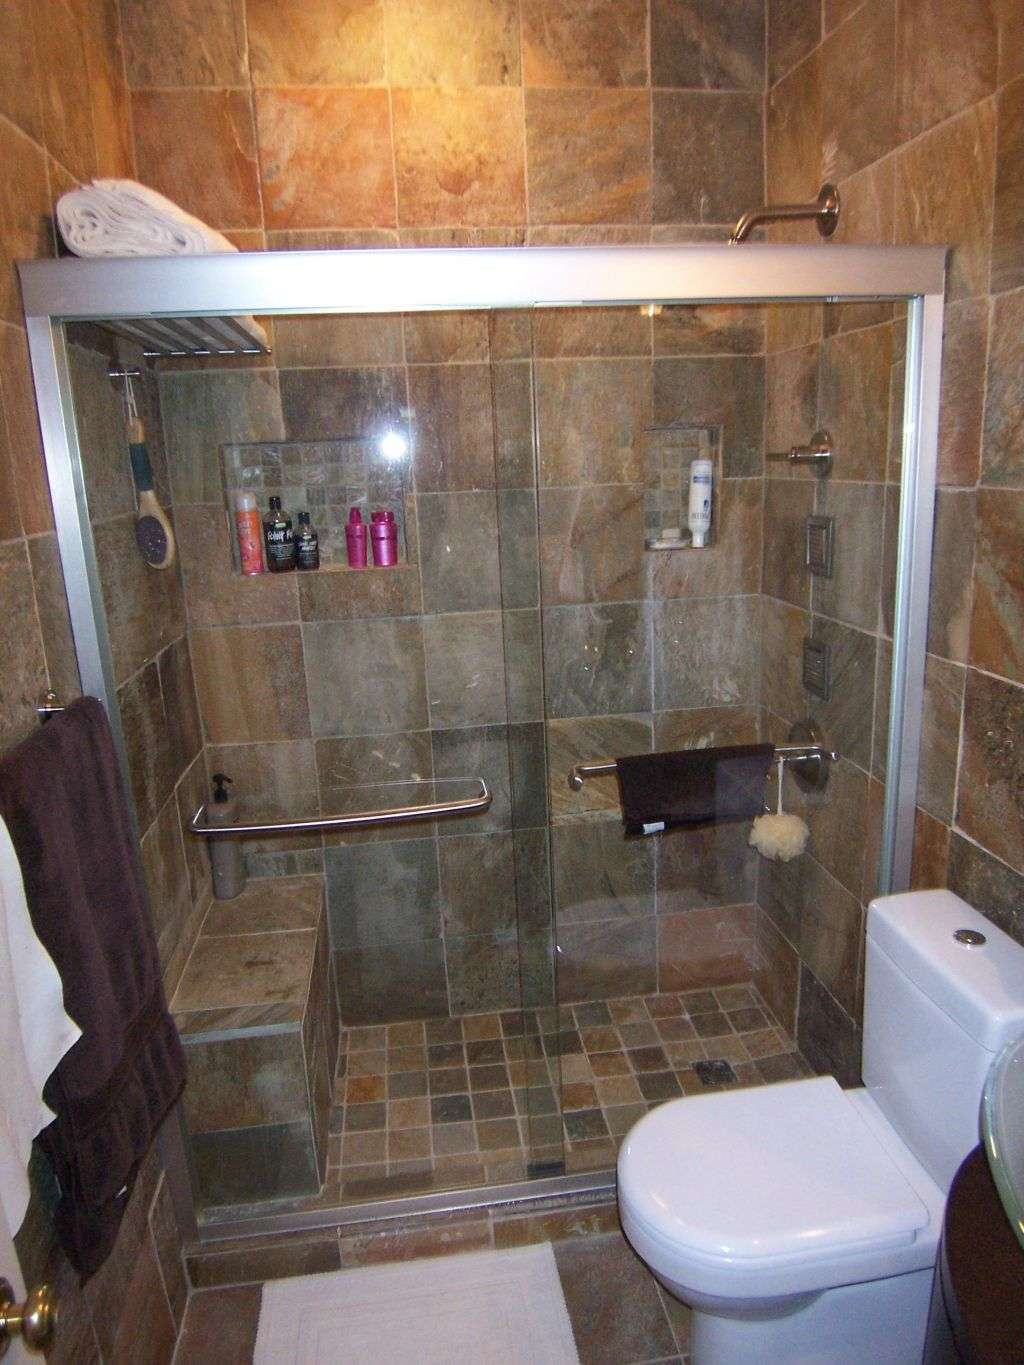 Best Small Bathroom Ideas - Ideas for bathroom remodeling a small bathroom